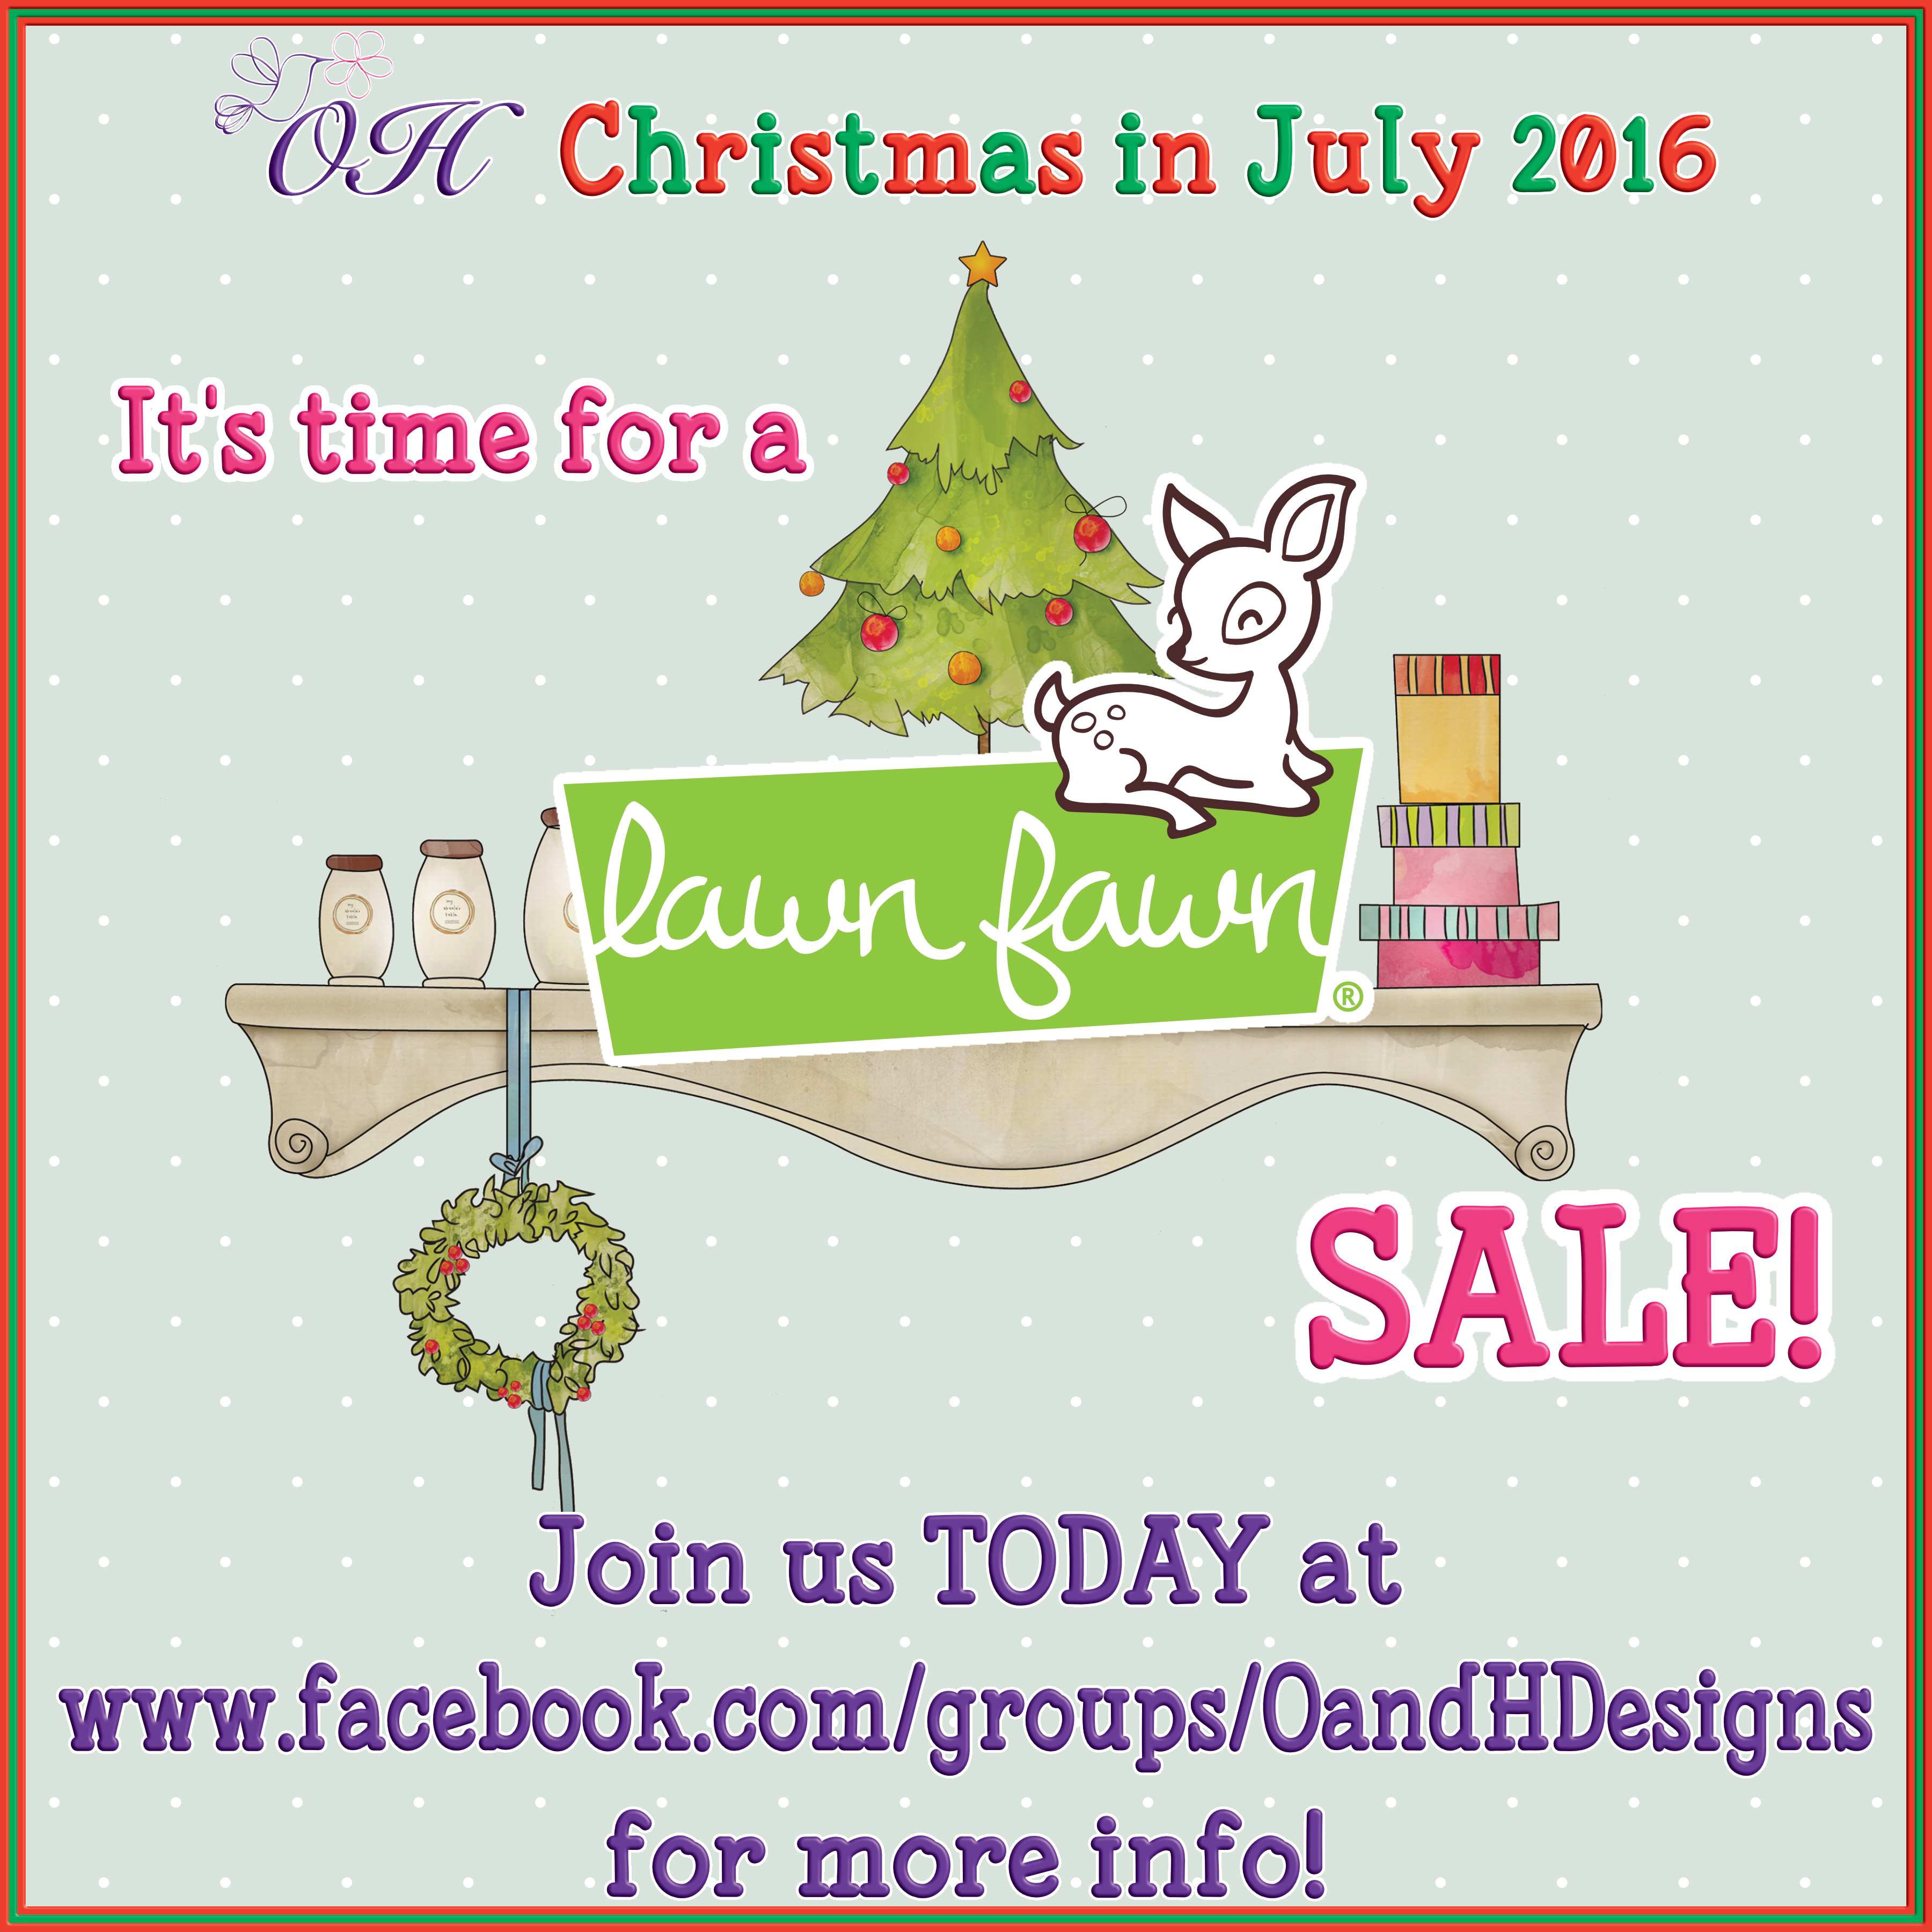 Join us at Facebook.com/groups/oandhdesigns for sale details! #oandhdesigns #lawnfawn #planner #planneraddict #plannercommunity #plannerlove #scrapbooking #stamps #clearstamps #rubberstamp #inkpad #stationery #stationeryaddict #stationerylove